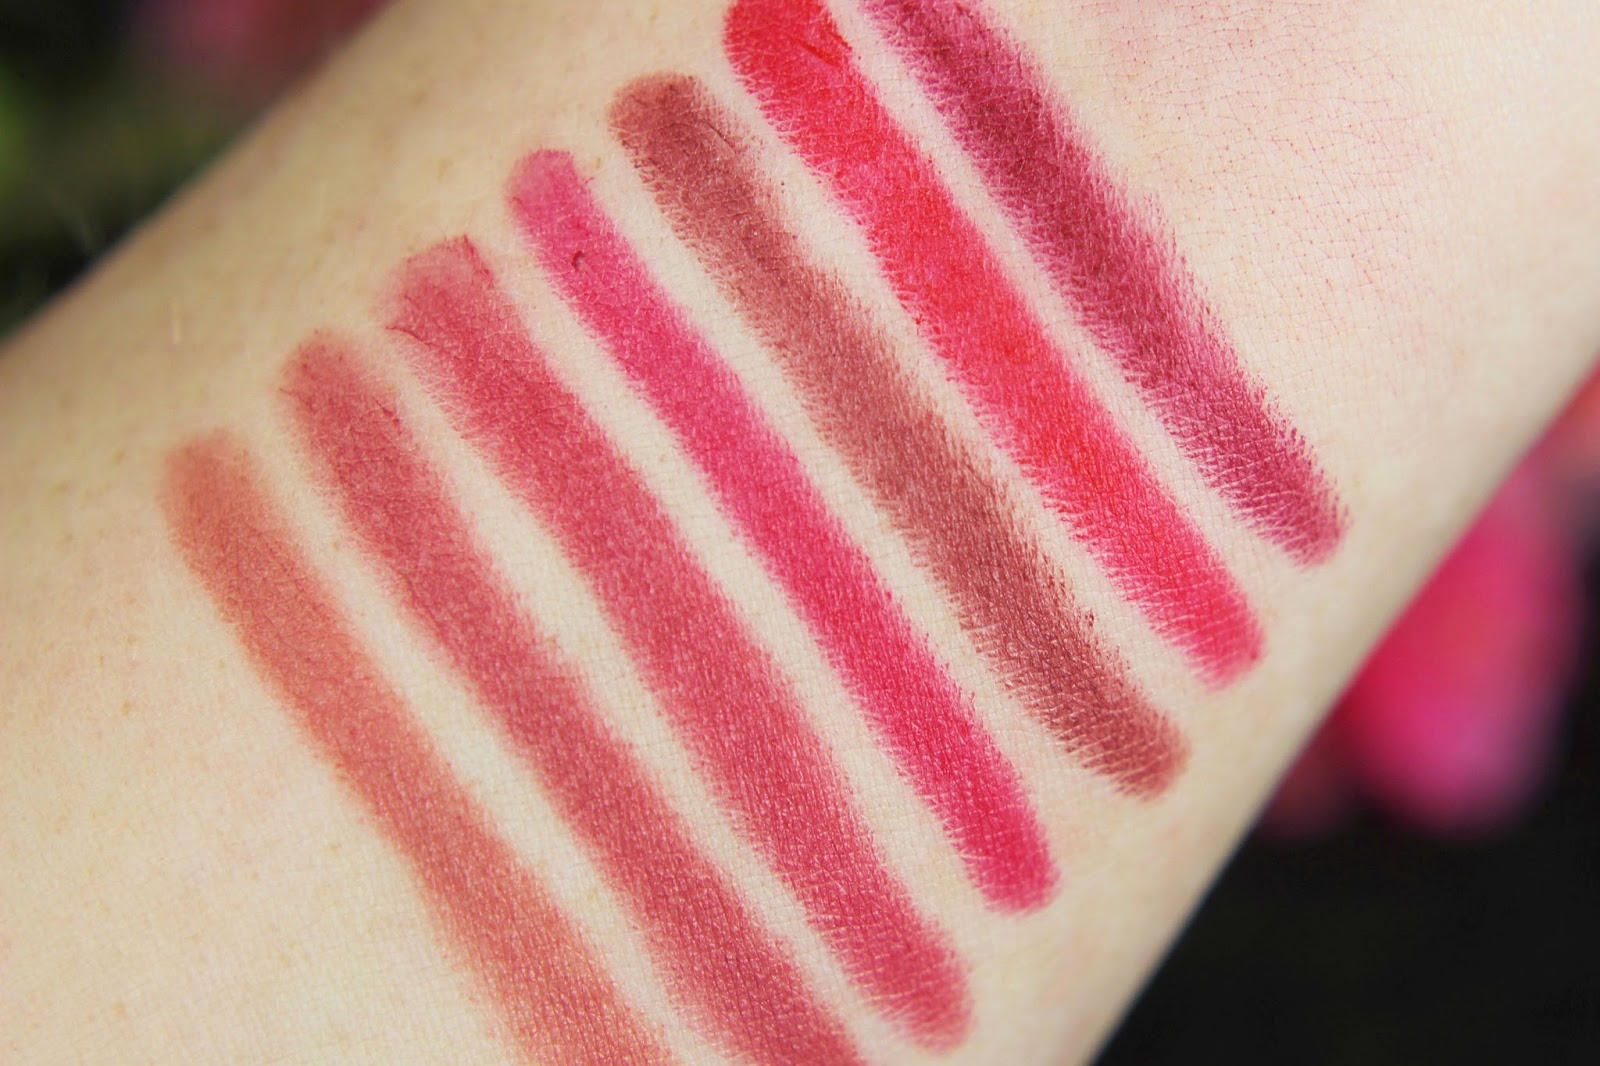 matt 6hr Lip Artist, catrice, review, swatches, tragebilder, herbst, 2016, neues sortiment, mattes finish, lippenstift, favoriten, trendfarben, nude, rot, rote lippen, ohne auszutrocknen, lipstick, drogerie, rosa,